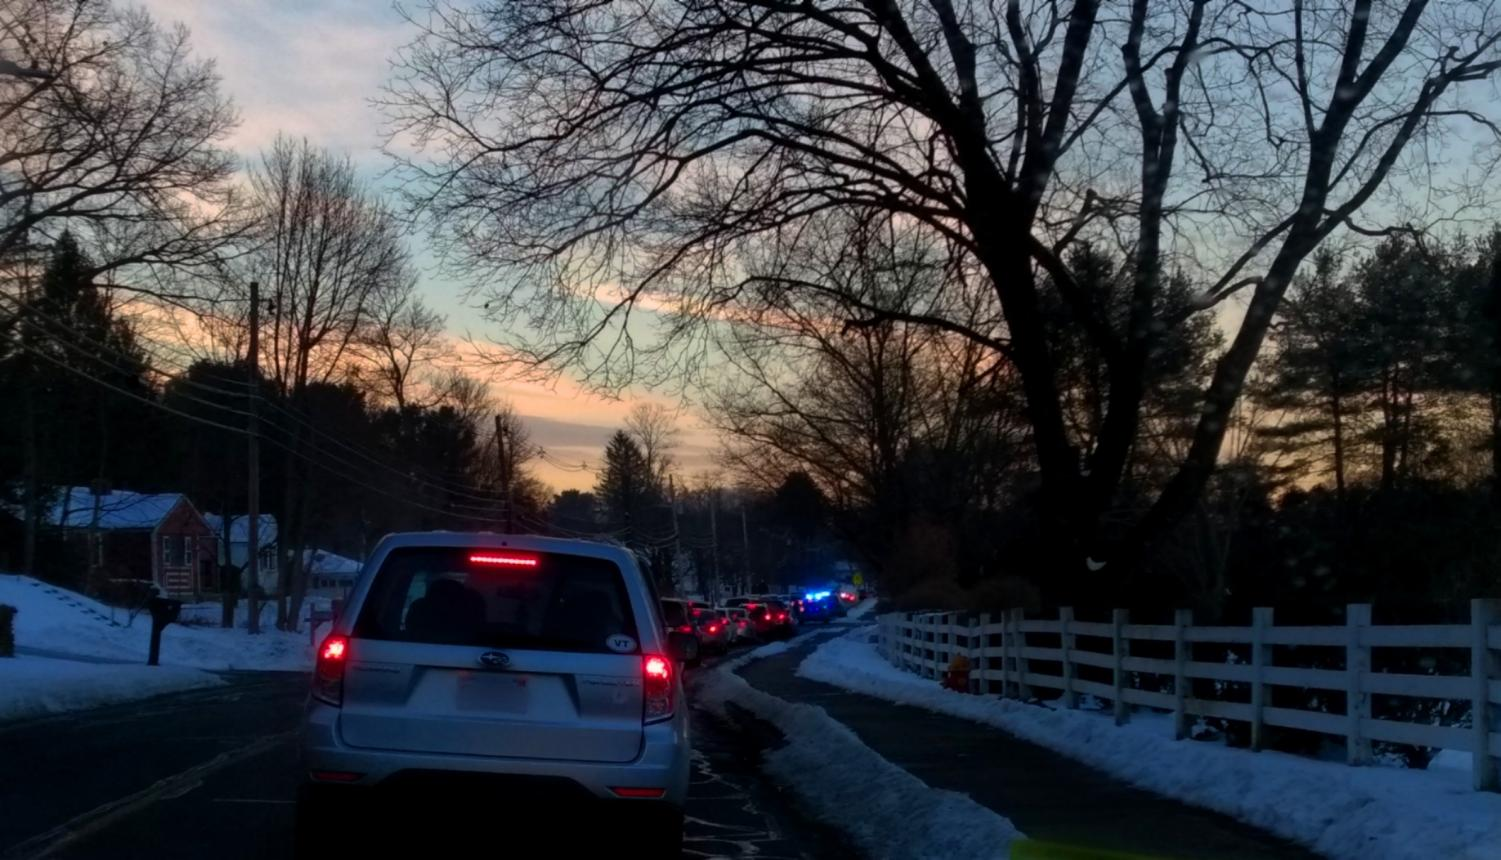 Cars haulted as police tend to an accident in the HHS driveway |by Veronica Mildish